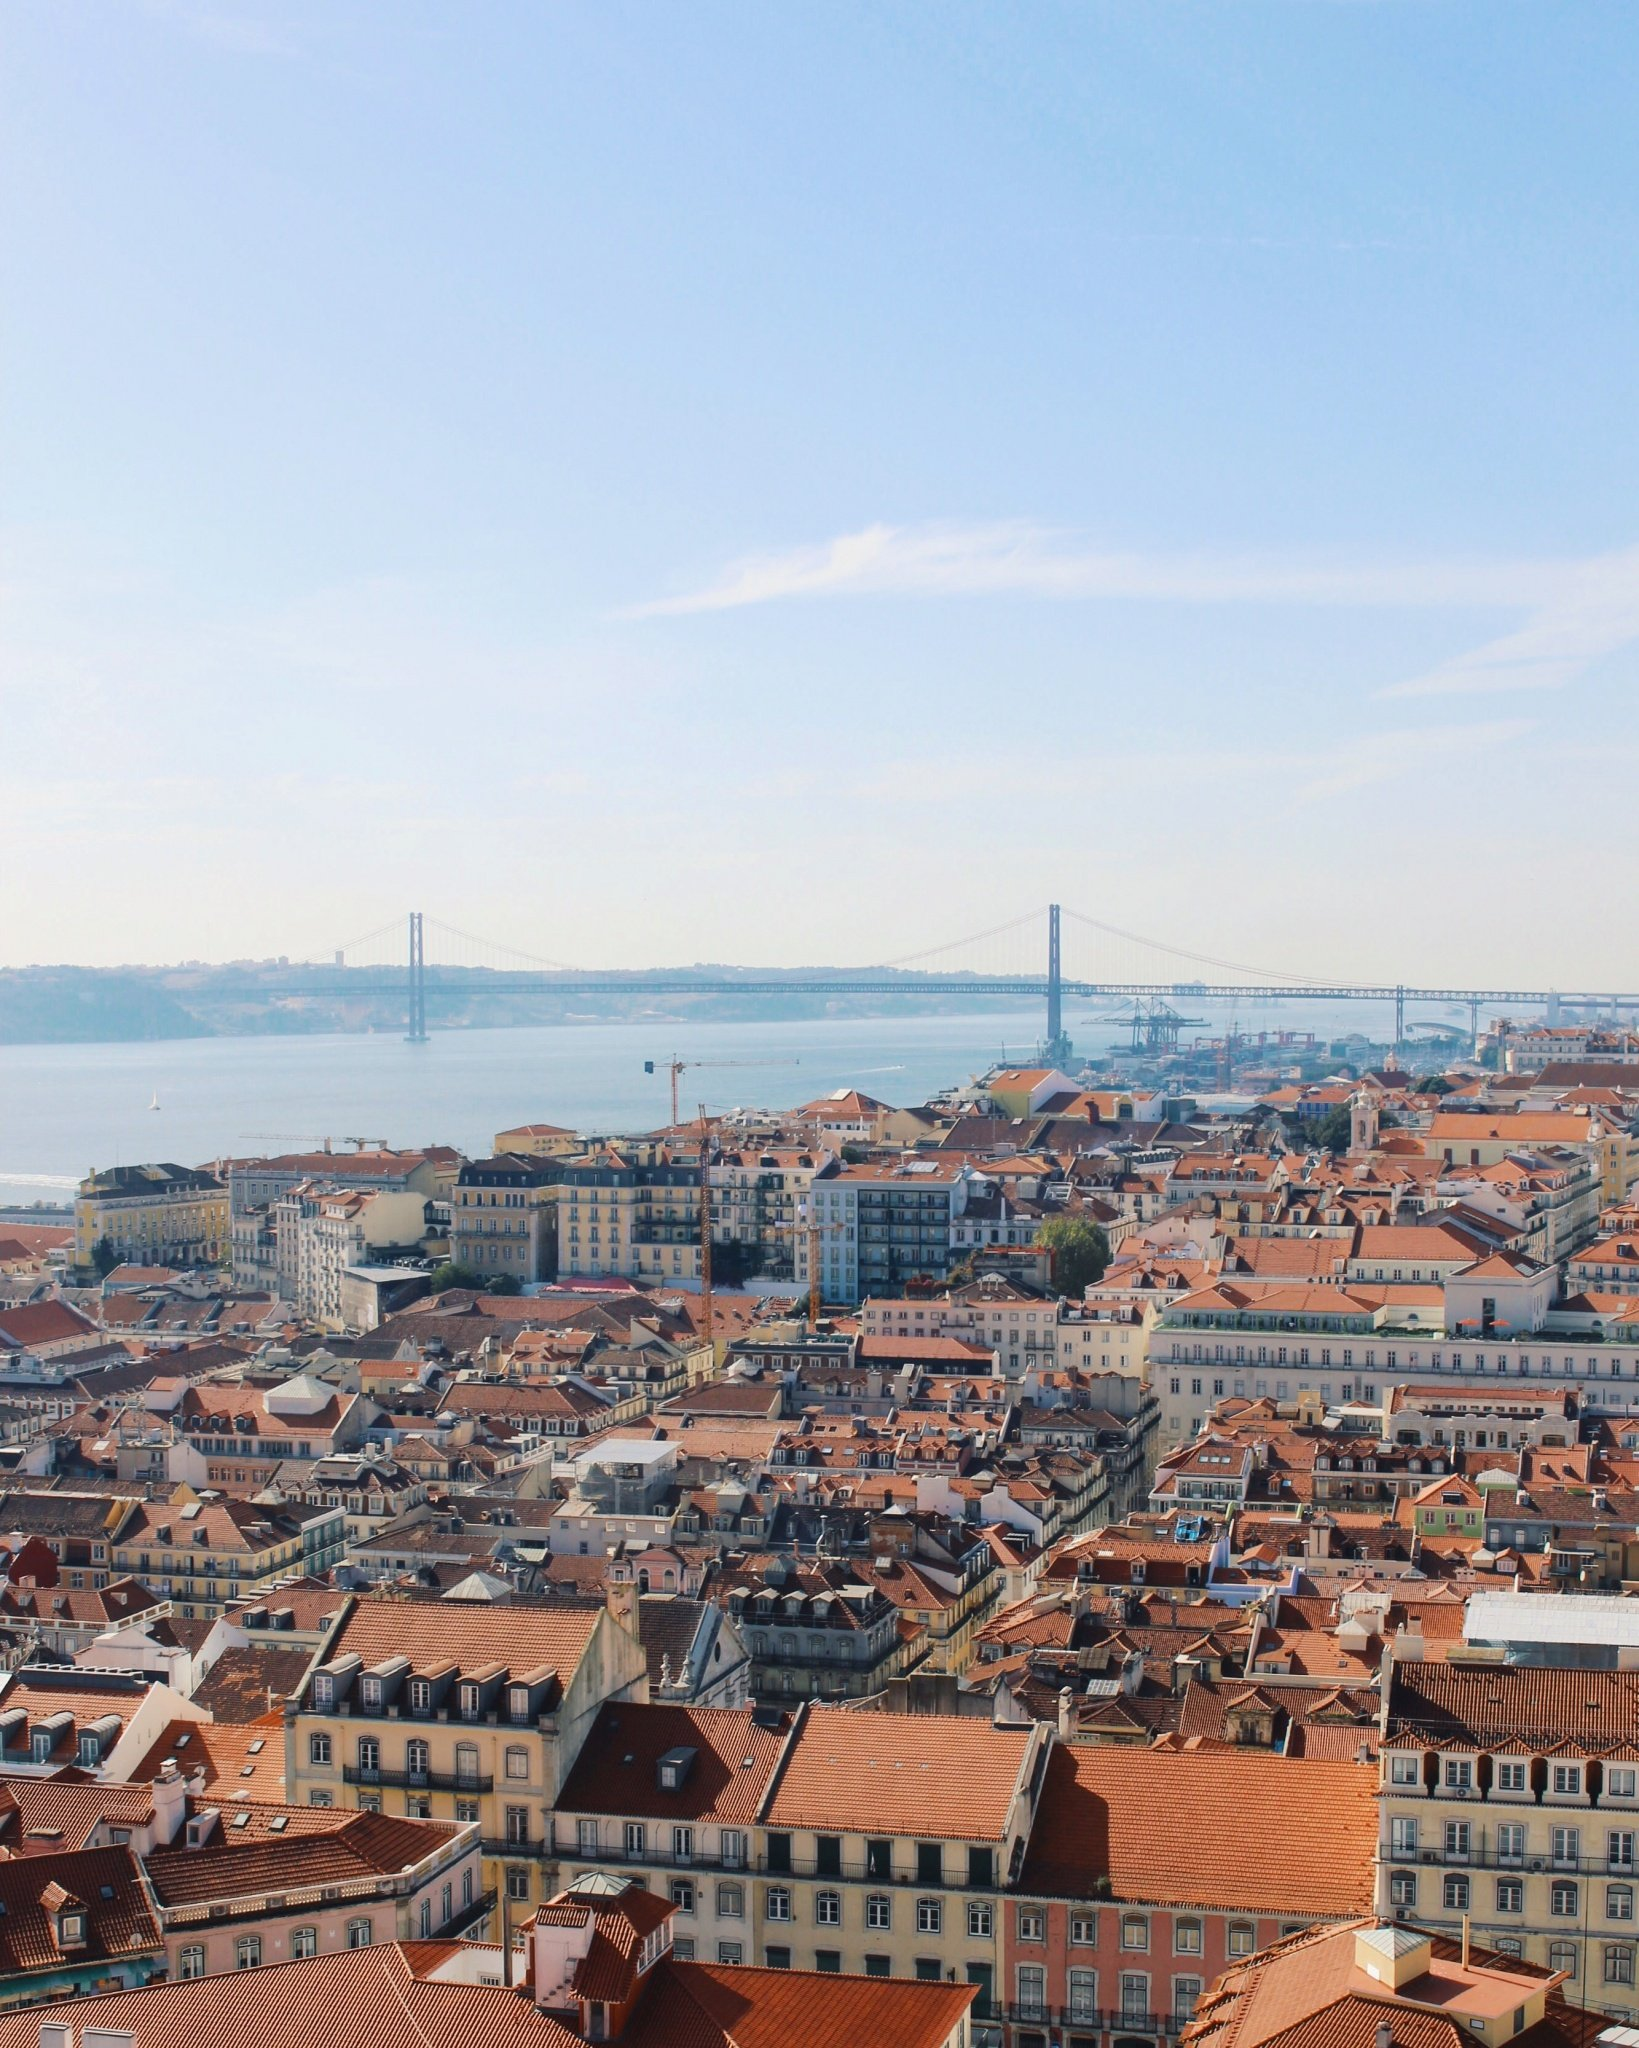 Beautiful views from São Jorge Castle in Lisbon, Portugal